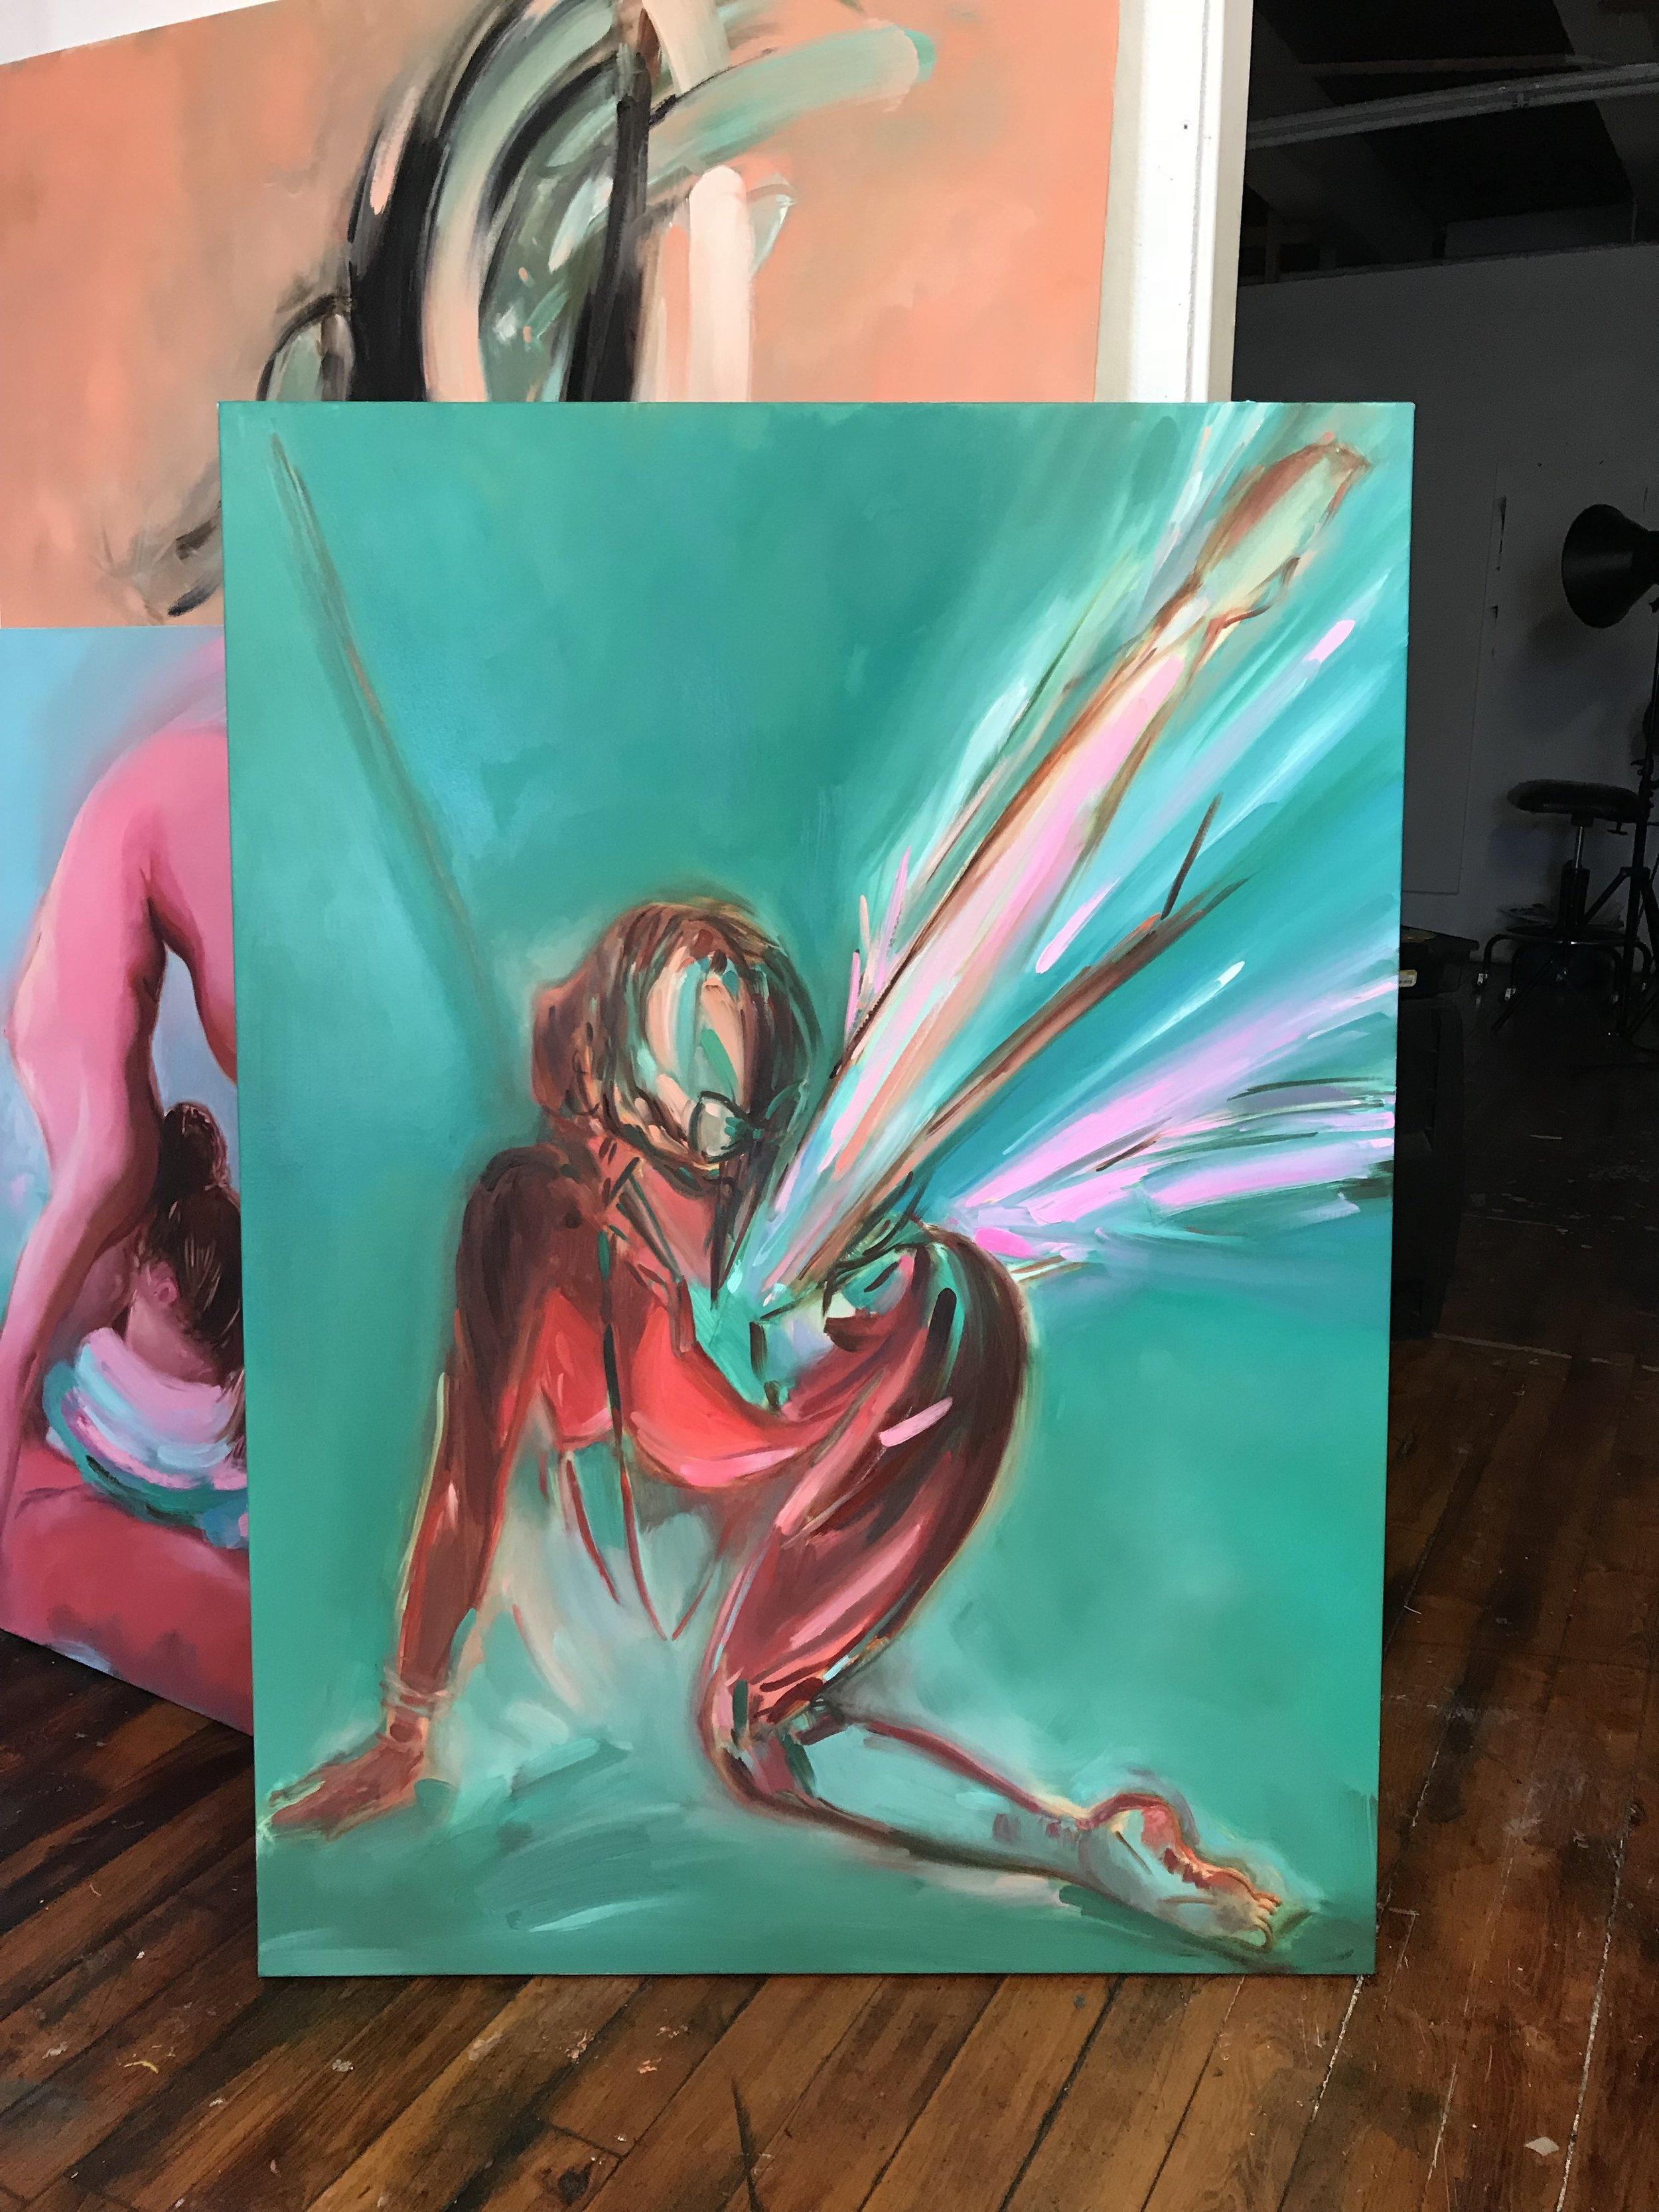 Ariel Basson Freiberg, Pegasus, oil on linen, 48 x 36 in., 2018